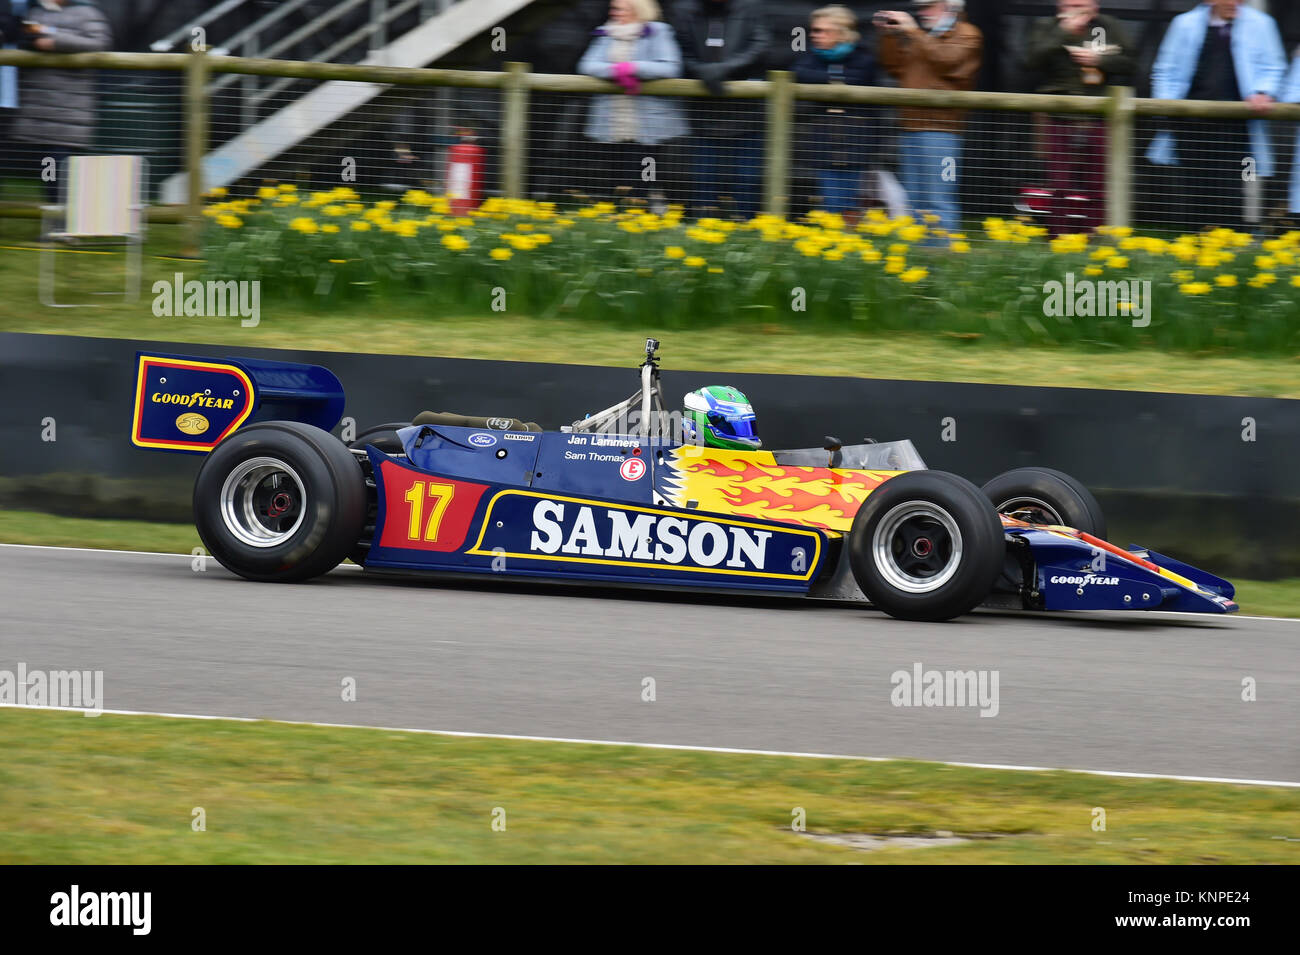 Sam Thomas, Shadow Cosworth DN9, Ground effect Grand Prix cars, Goodwood 74th Members Meeting, 74th members Meeeting, - Stock Image